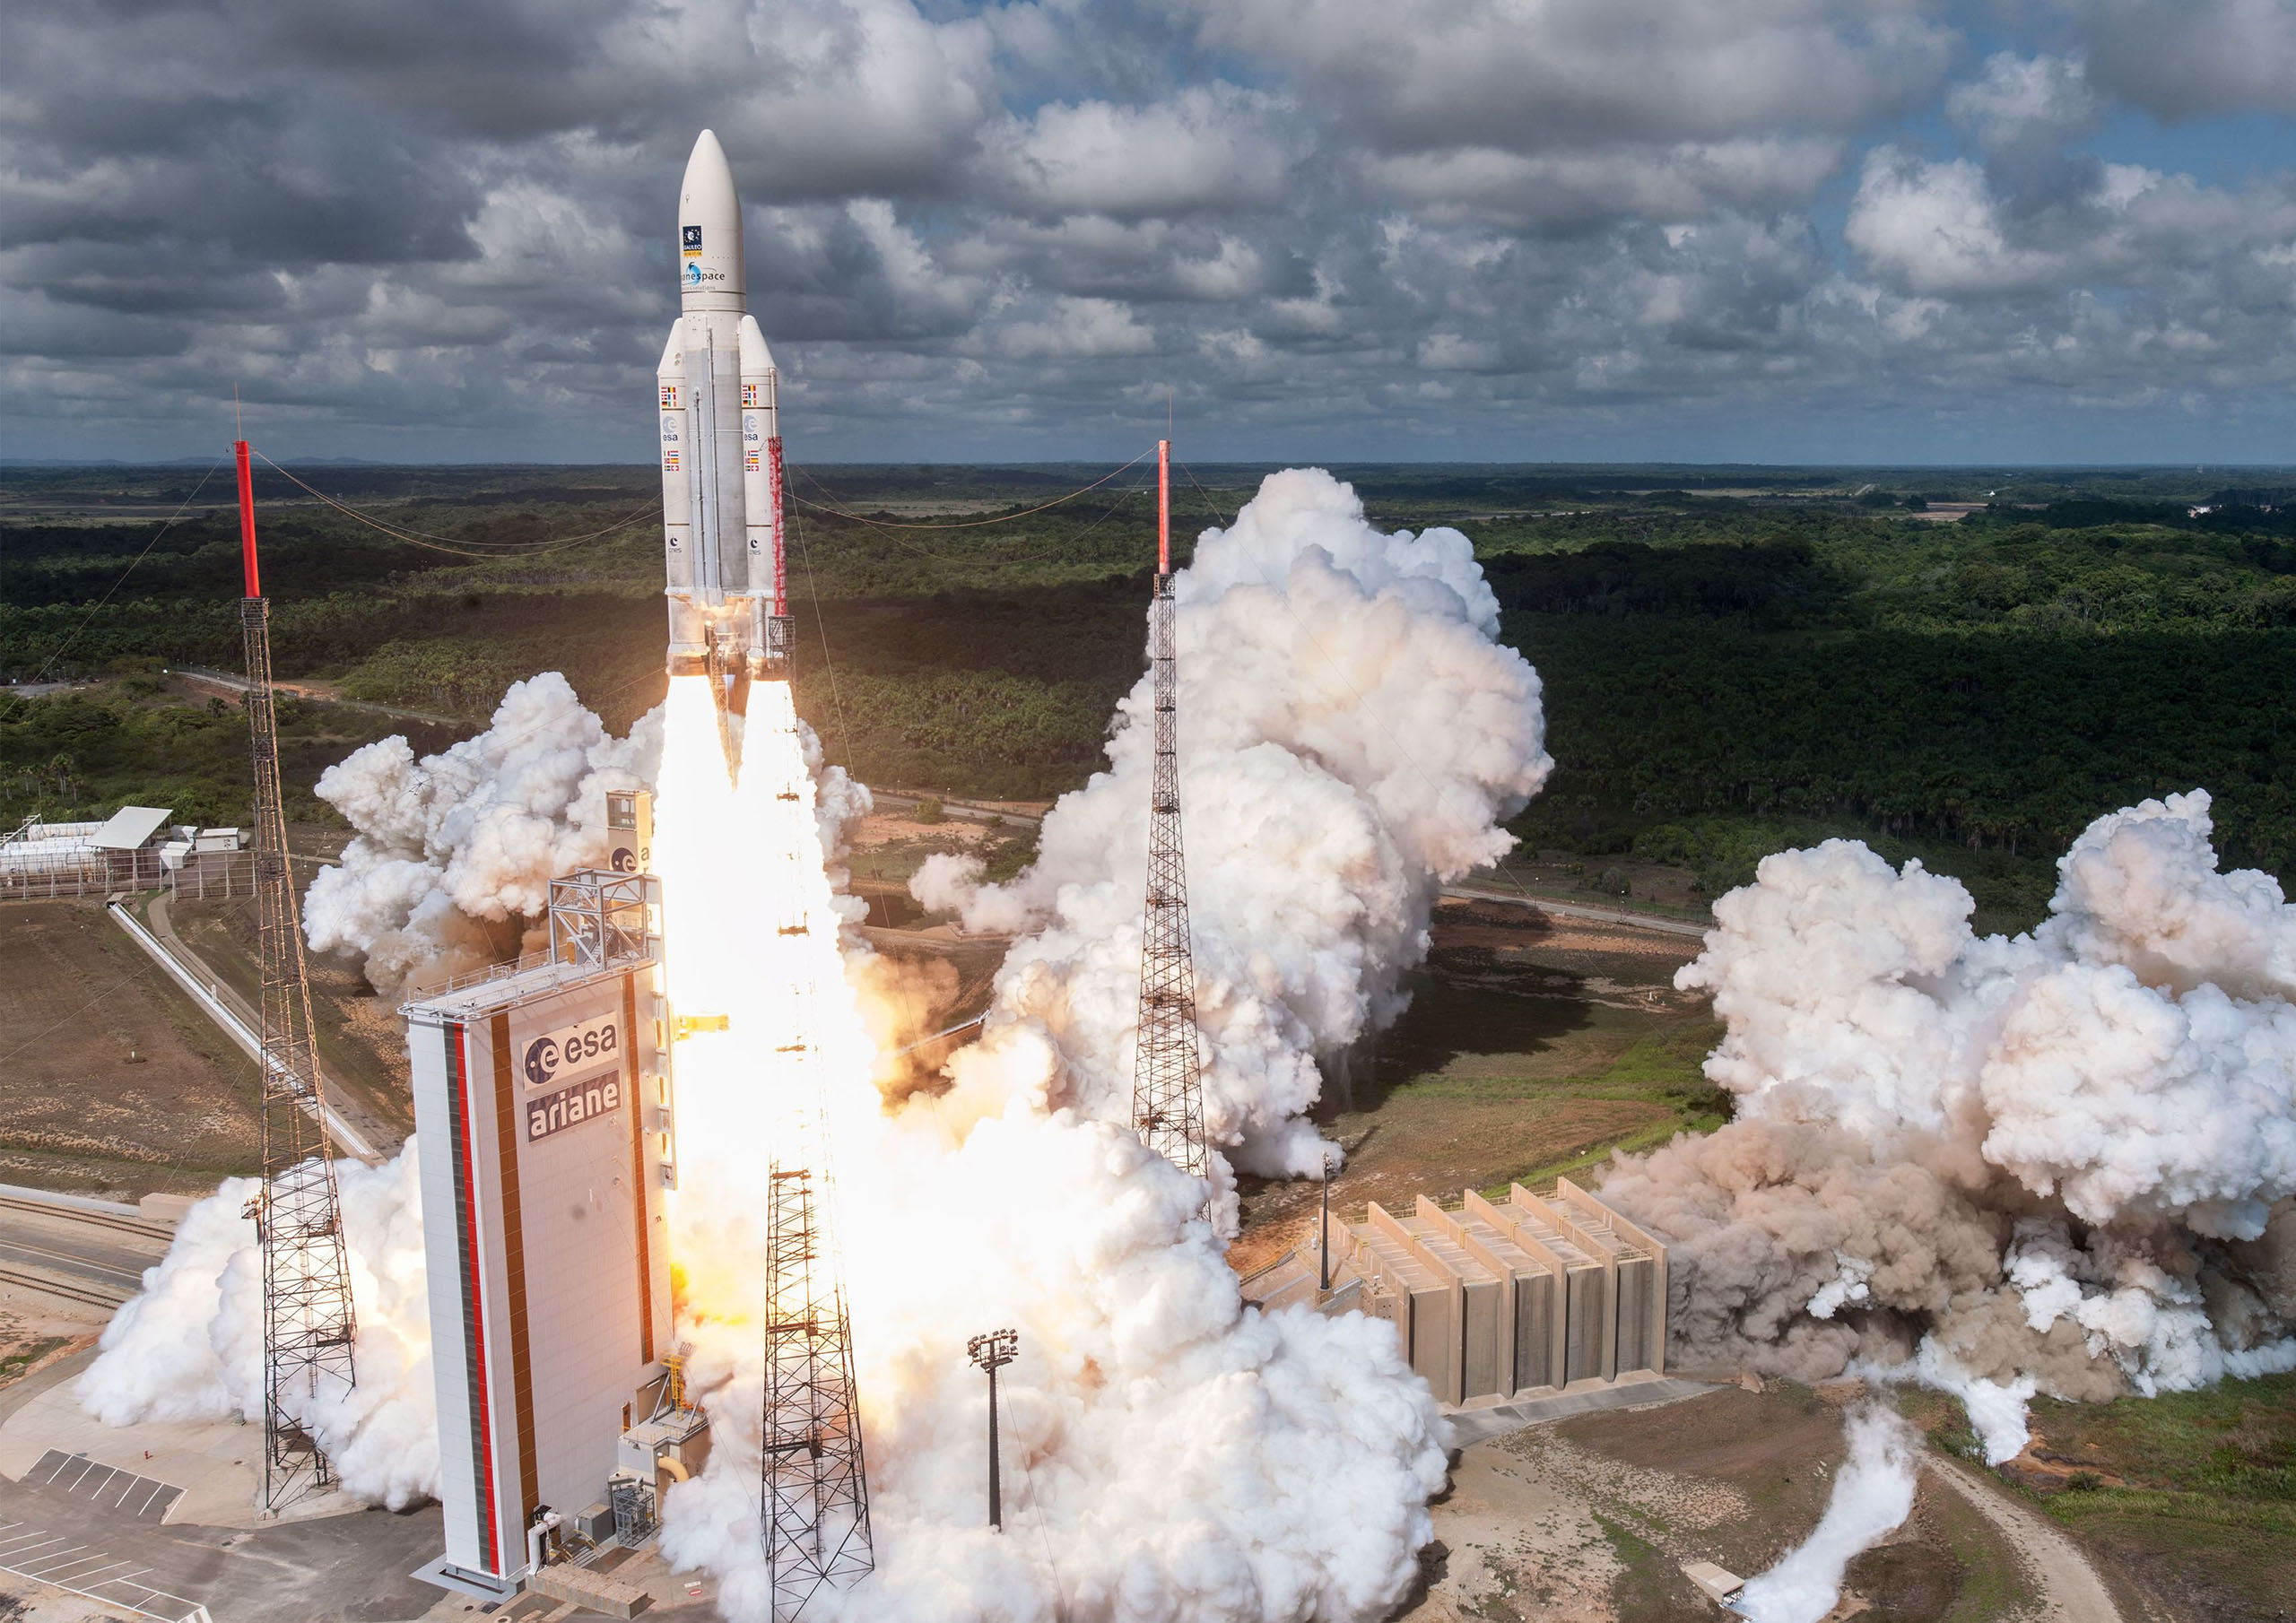 This photo released on Nov. 17, 2016 shows shows the Ariane 5 rocket with a payload of four Galileo satellites lifting off from ESA's European Spaceport in Kourou, French Guiana.